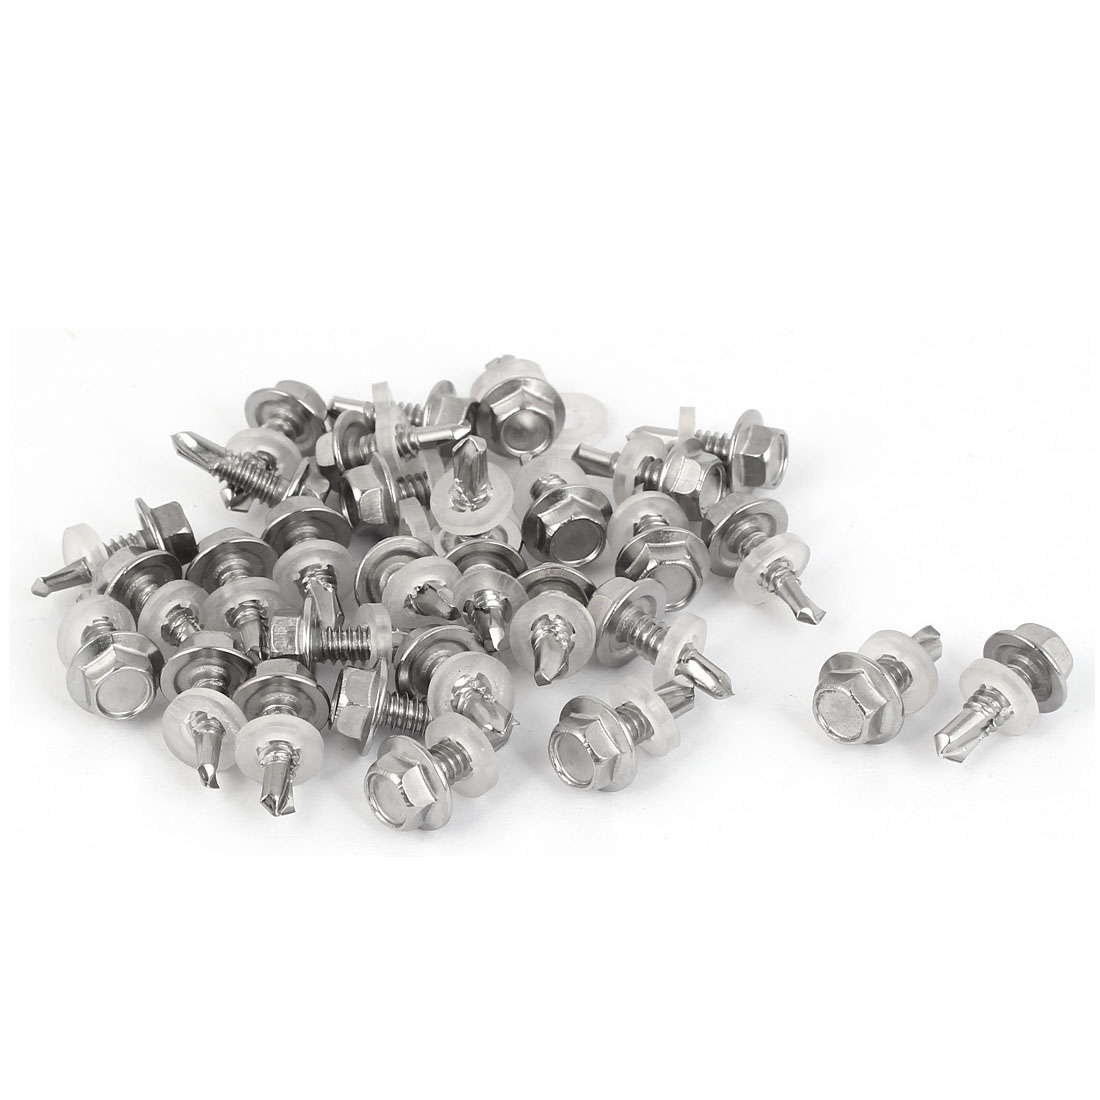 M5.5 x 16mm Male Thread 410 Stainless Steel Self Drilling Screw w Washer 30 Pcs